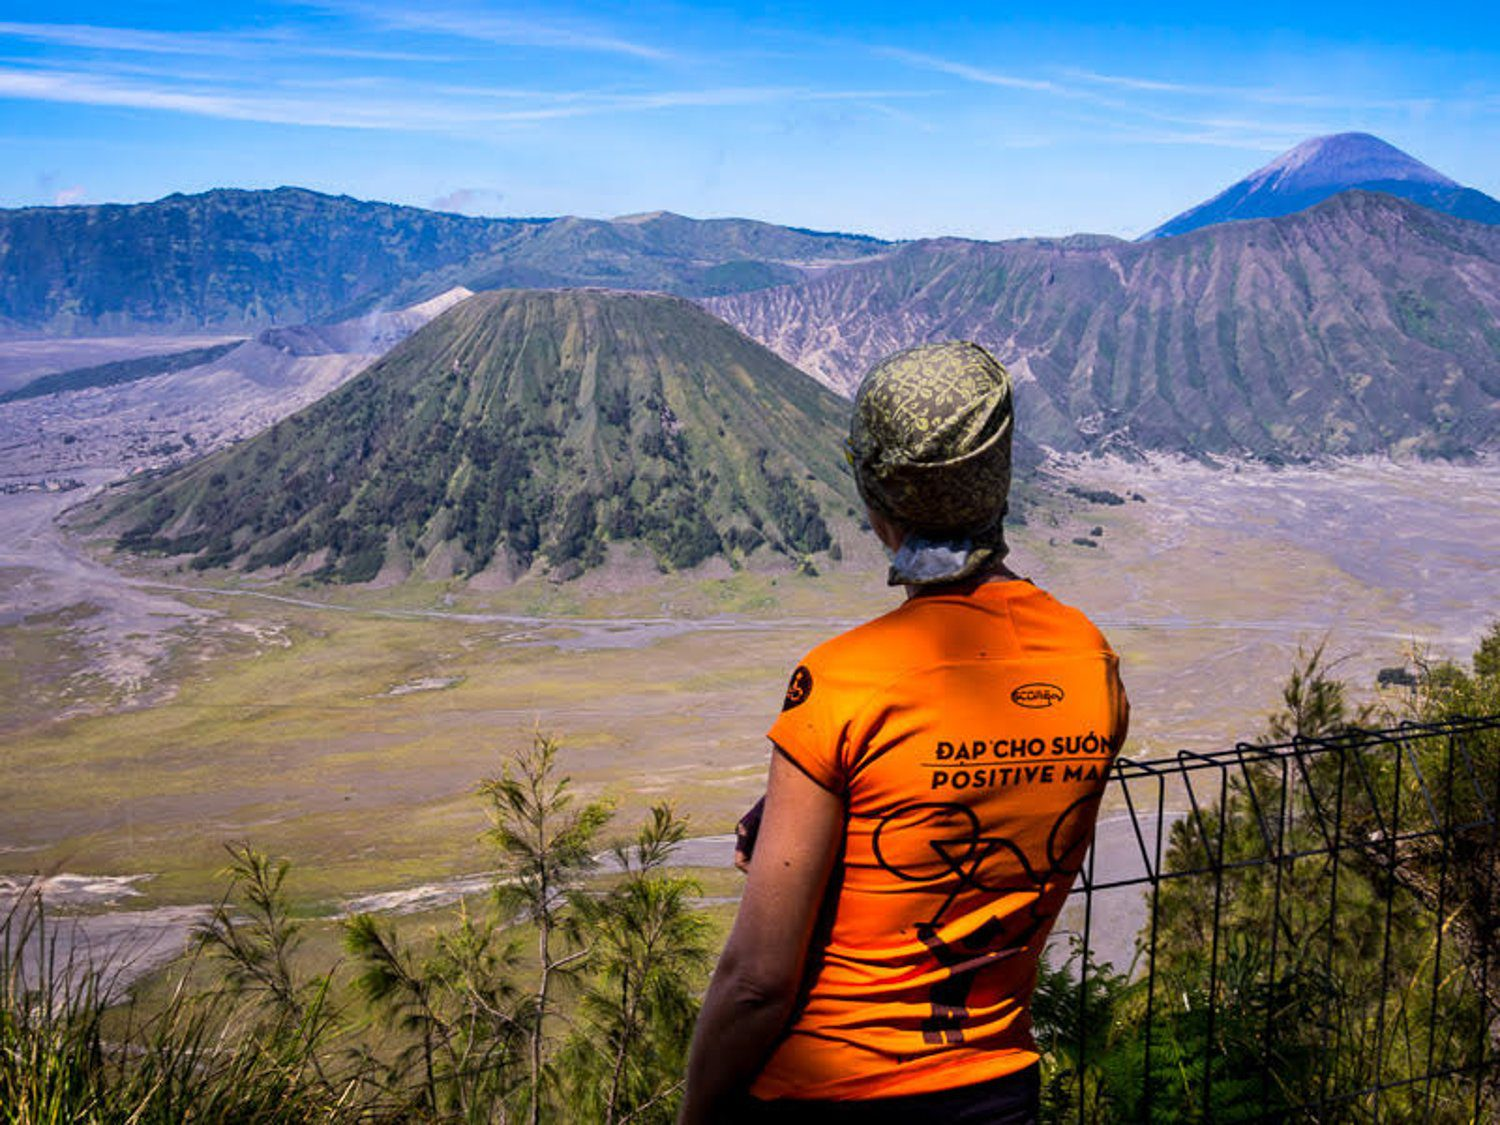 Jane takes in the beauty of Mount Bromo, Indonesia after a long, steep climb.